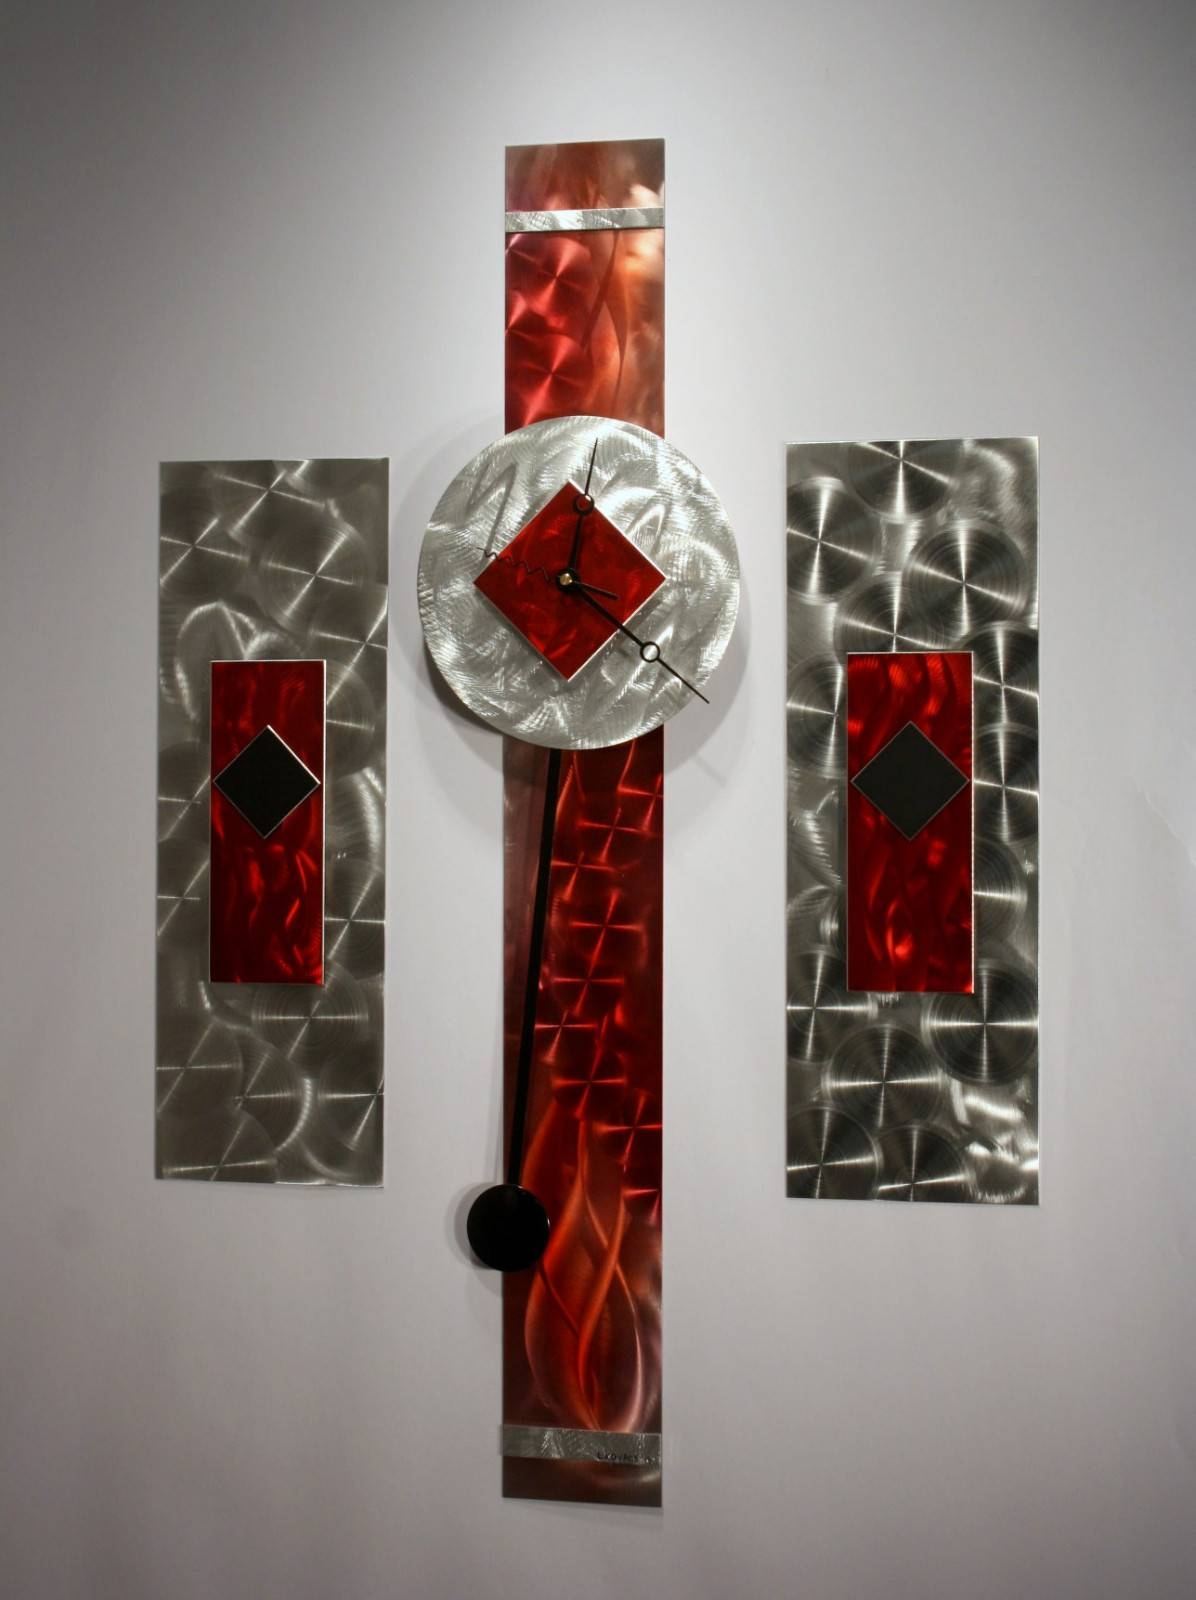 Wall Art: Collection Idea Metal Wall Art Sculptures Metal Wall Art In Most Recently Released Red And Black Metal Wall Art (View 13 of 20)